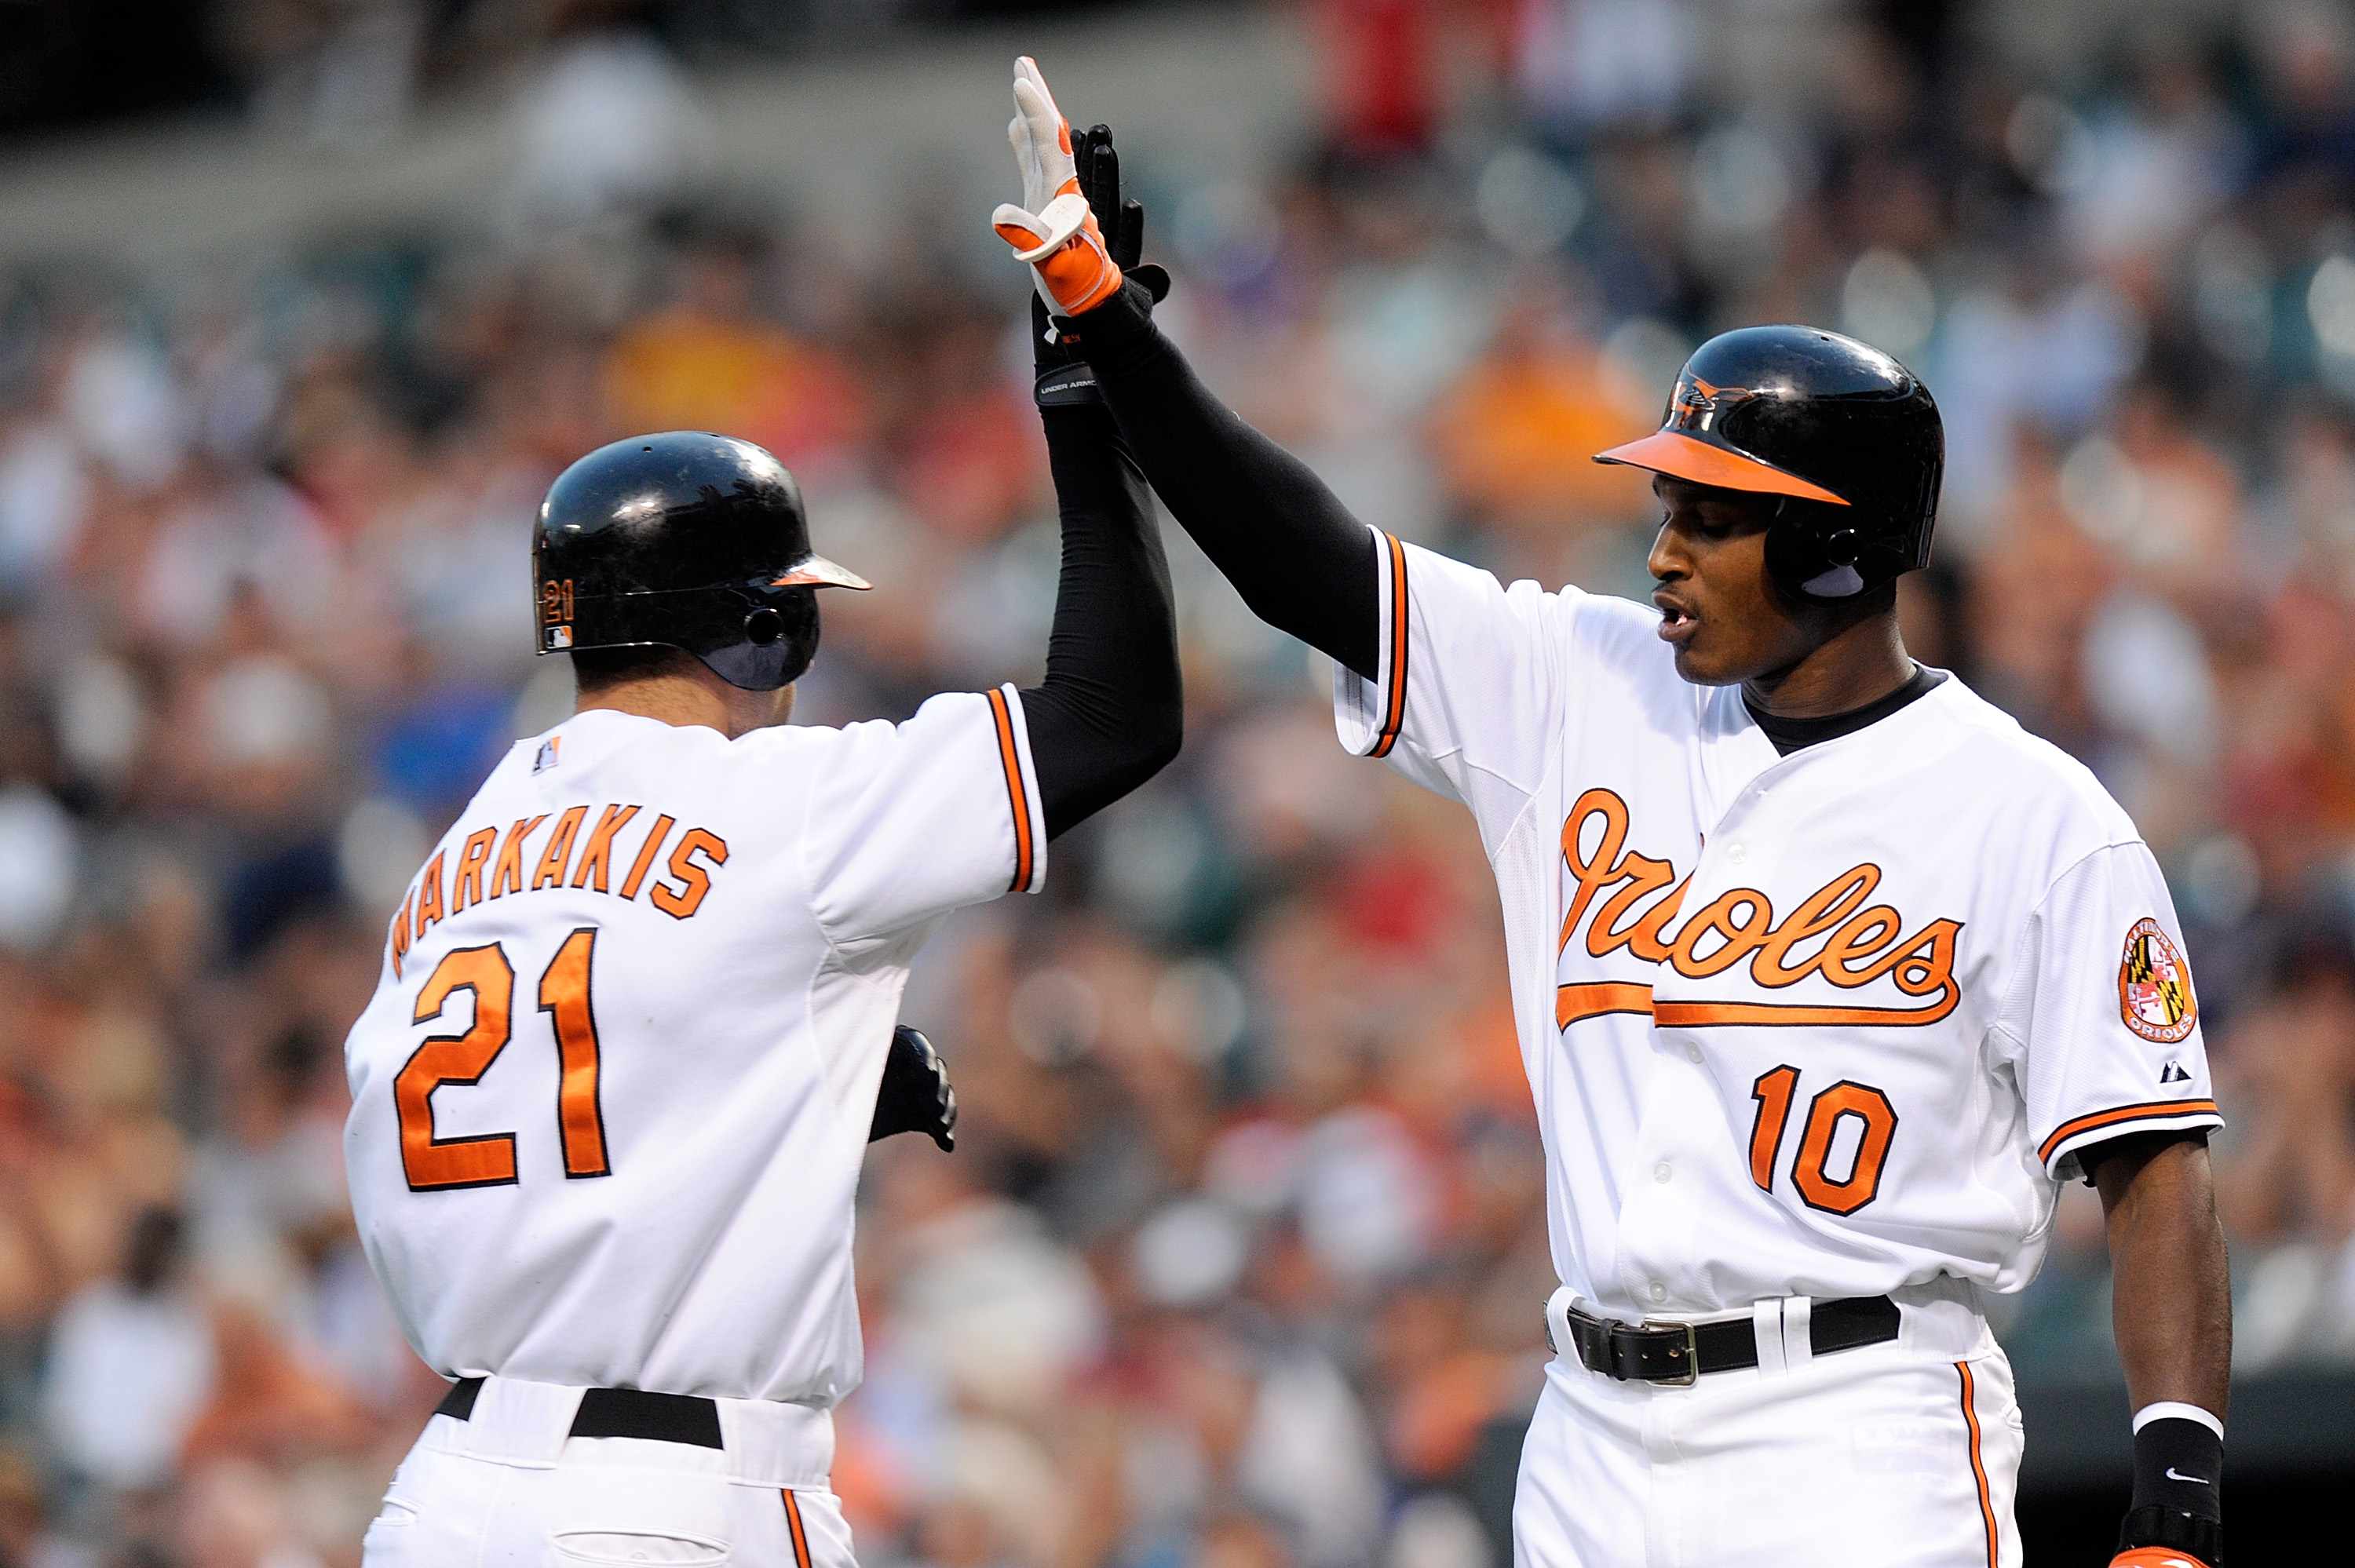 BALTIMORE - AUGUST 31:  Nick Markakis #21 of the Baltimore Orioles is congratulated by teammate Adam Jones #10 after scoring in the first inning against the Boston Red Sox at Camden Yards on August 31, 2010 in Baltimore, Maryland.  (Photo by Greg Fiume/Ge